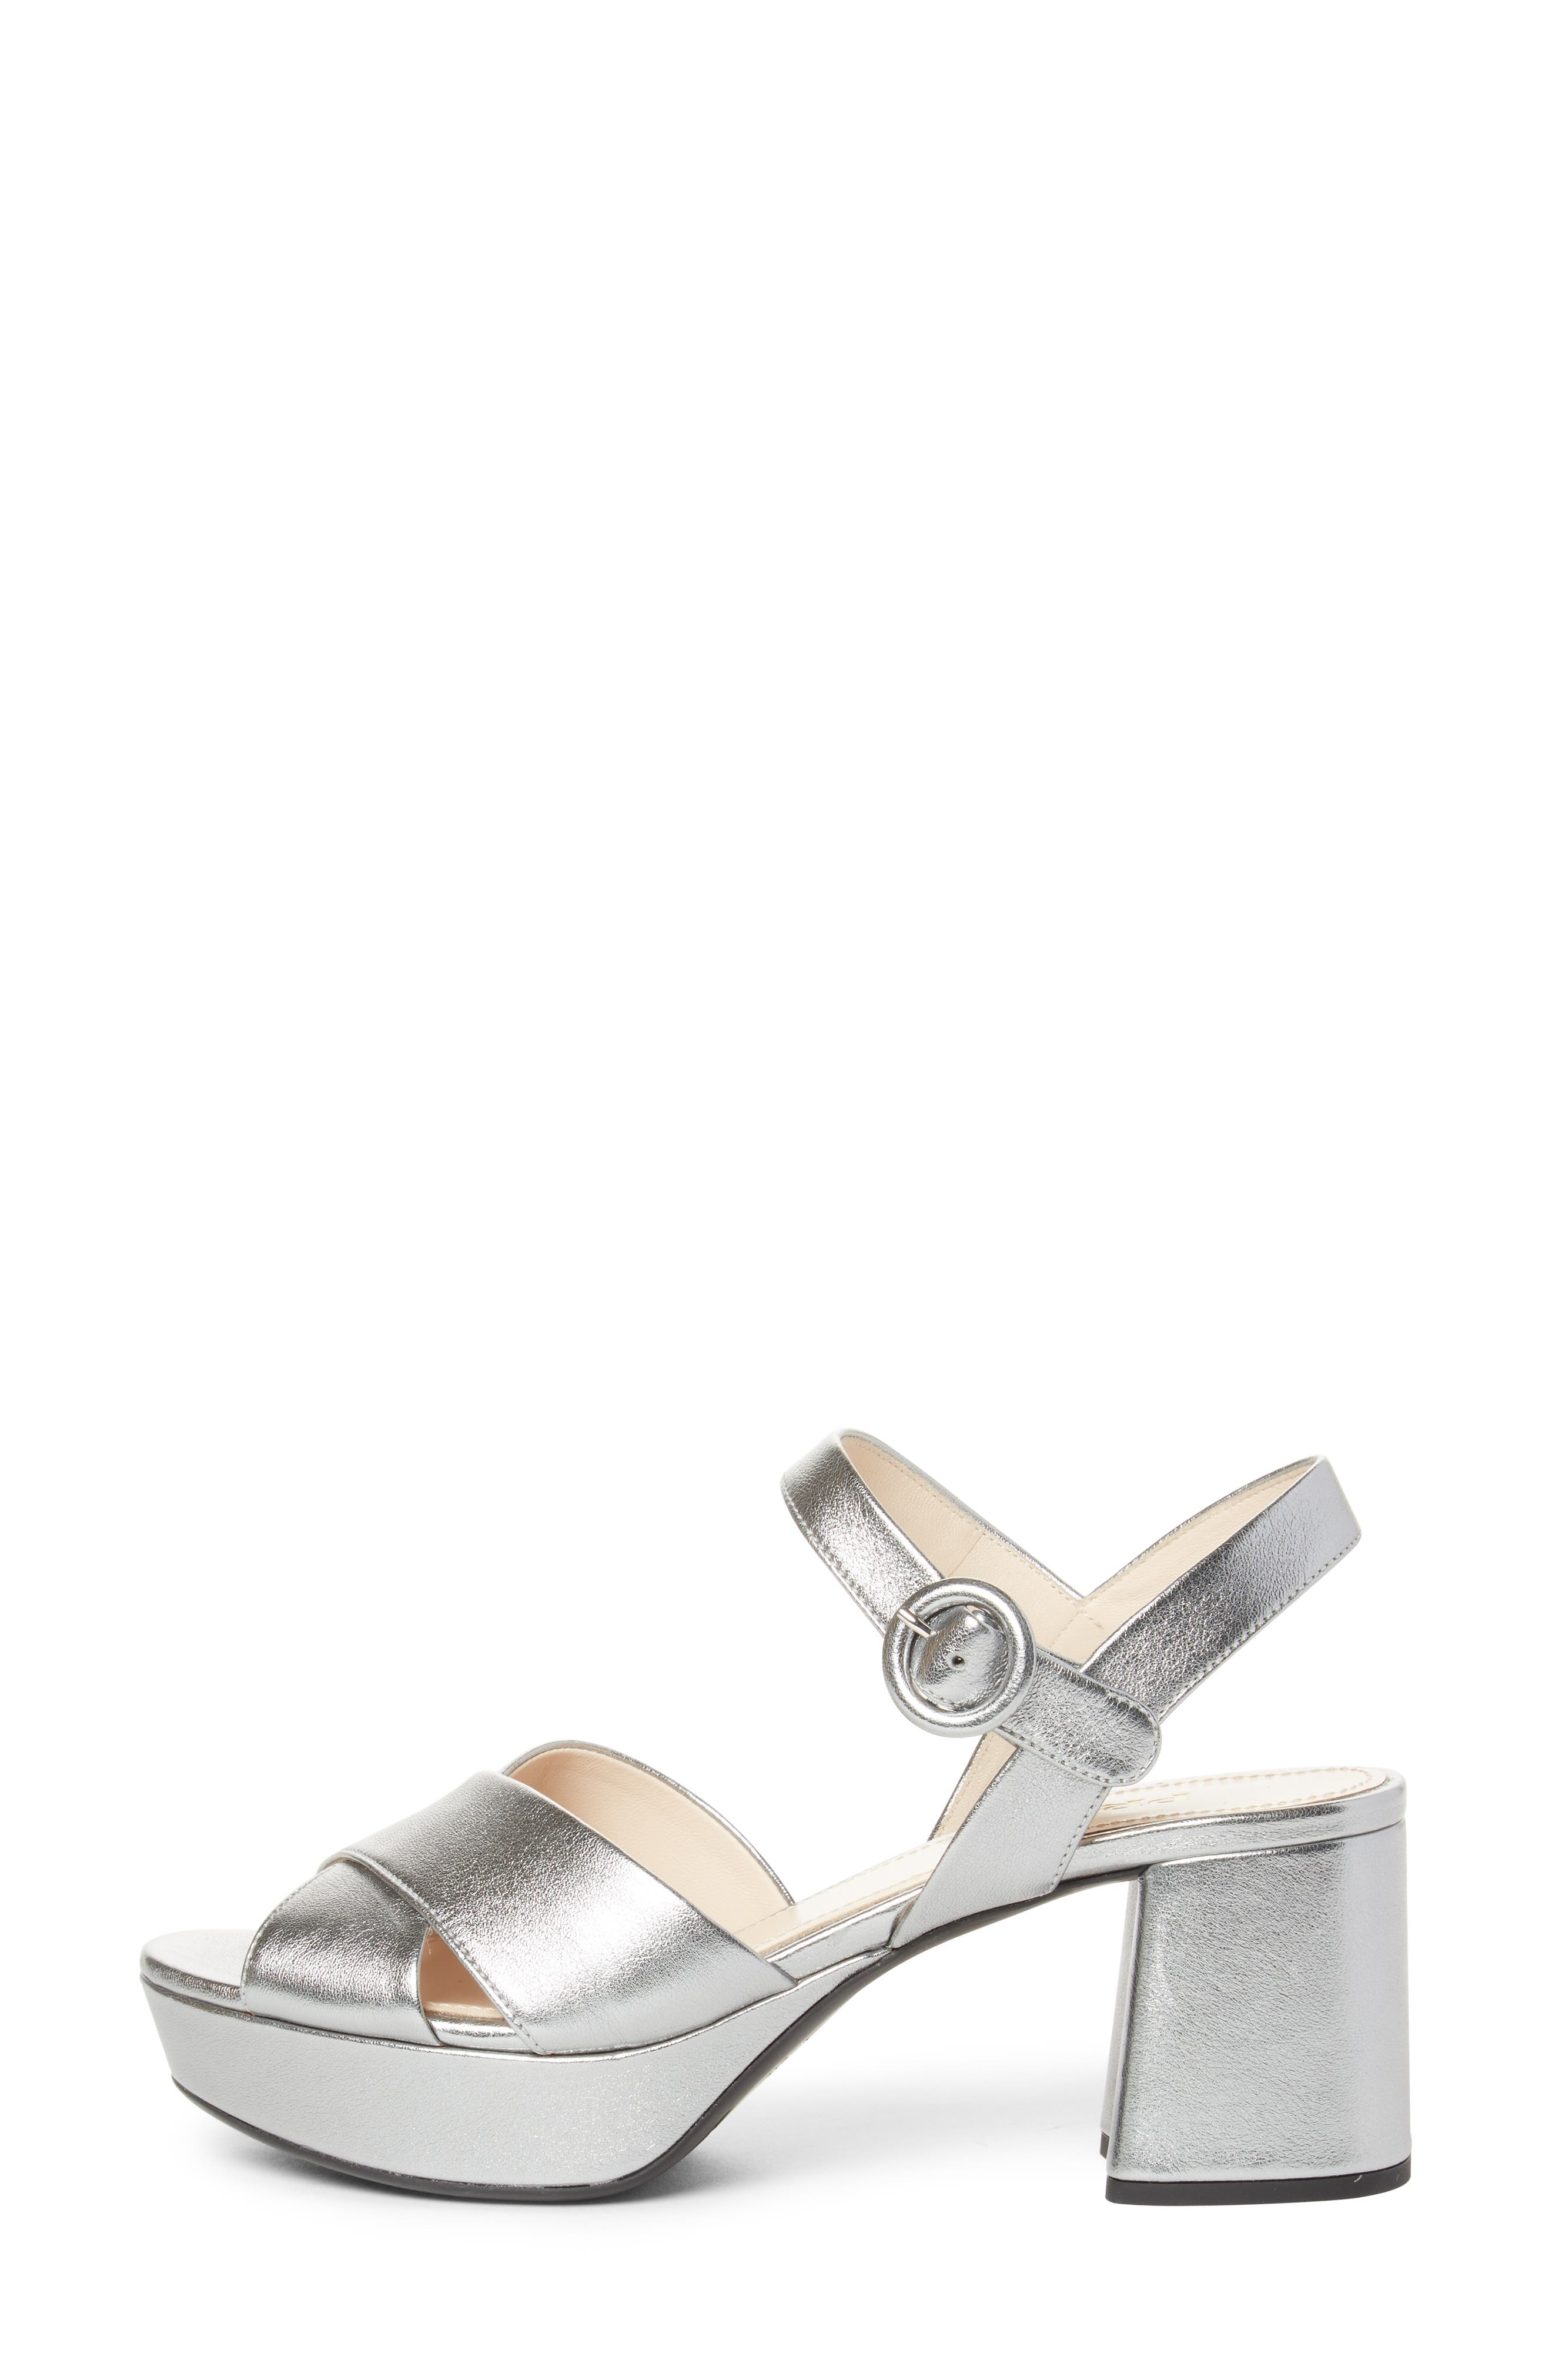 PRADA, Quarter Strap Platform Sandal, Alternate thumbnail 3, color, SILVER